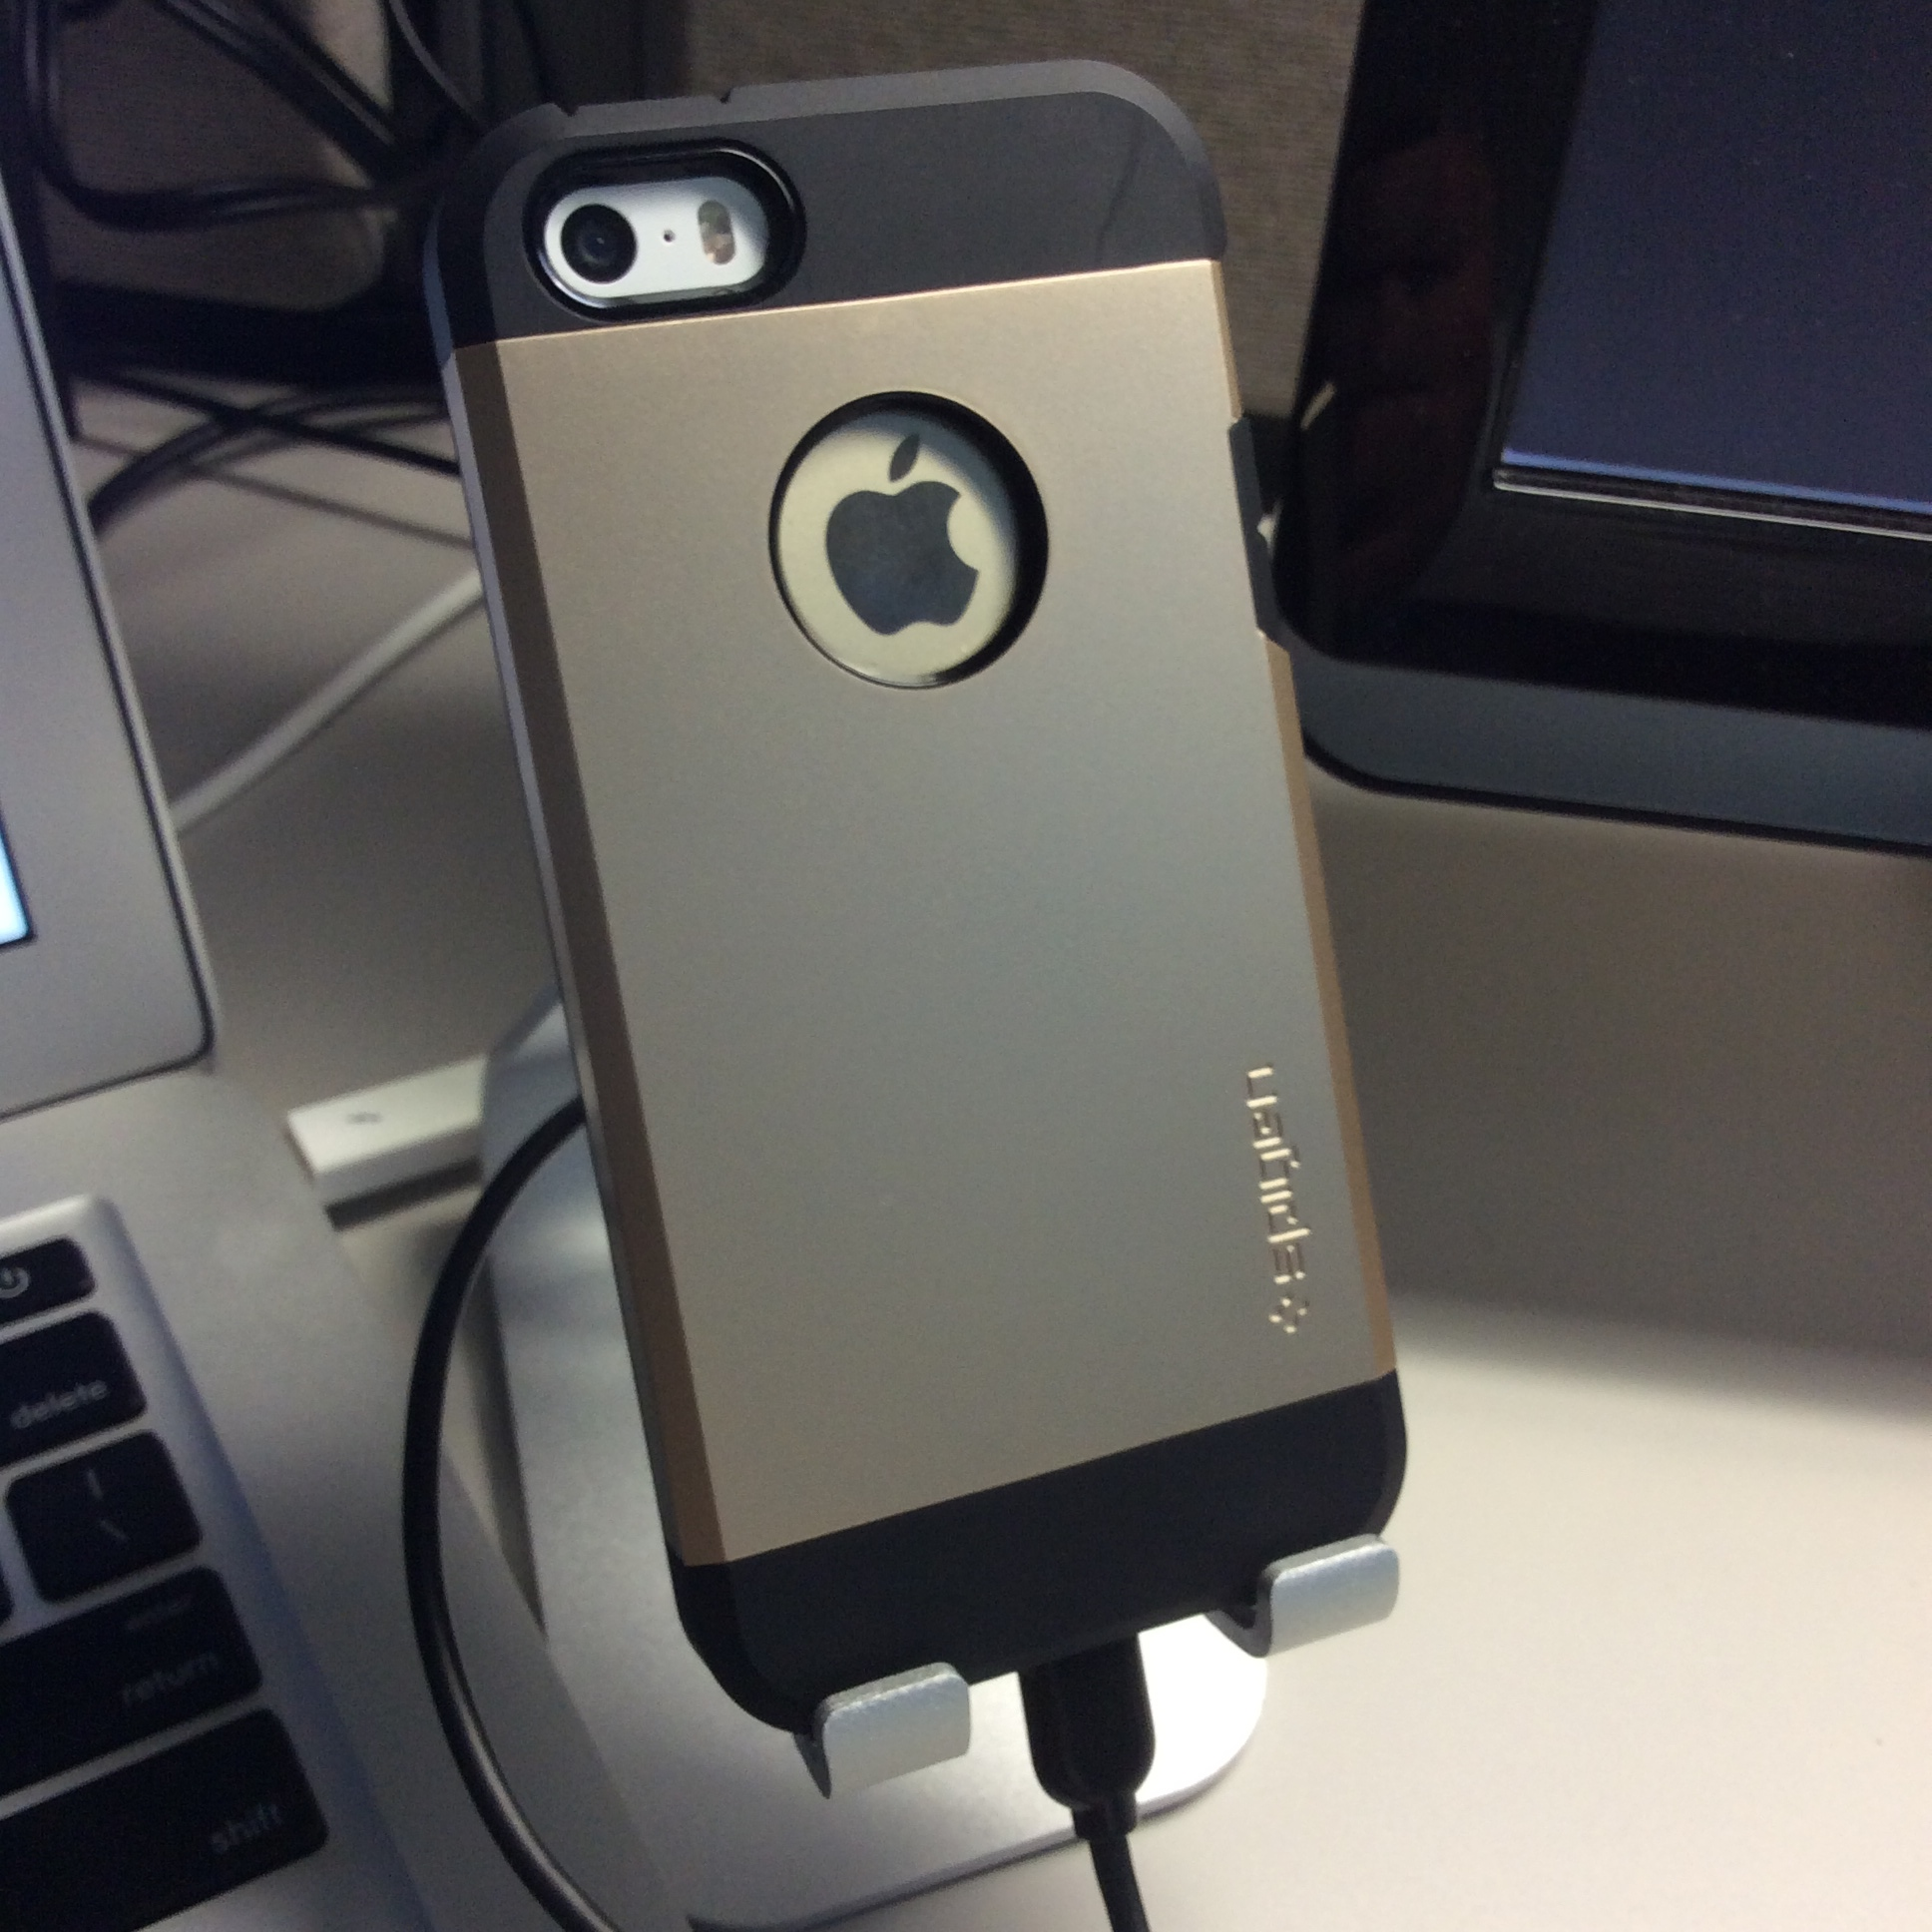 Spigen iPhone 5s case